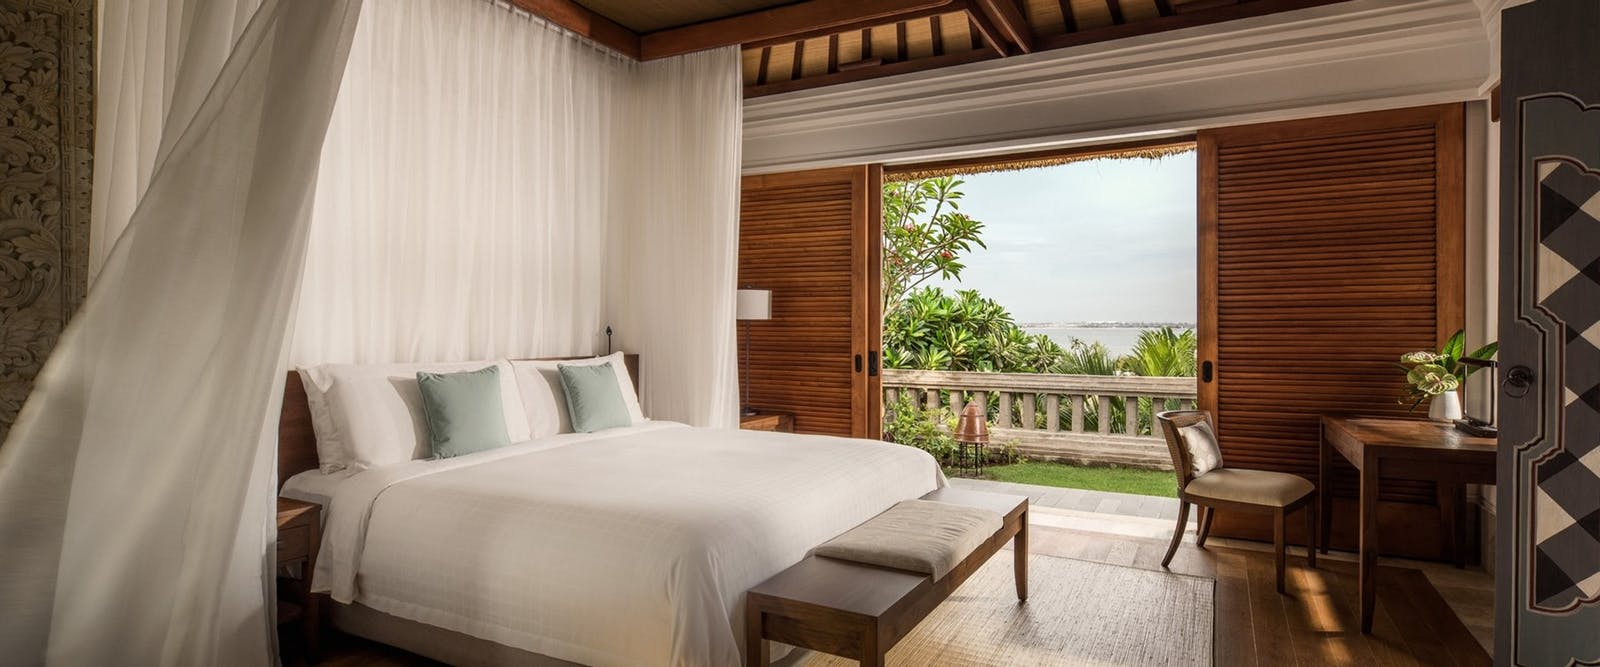 Villa bedroom at Four Seasons Resort Bali at Jimbaran Bay